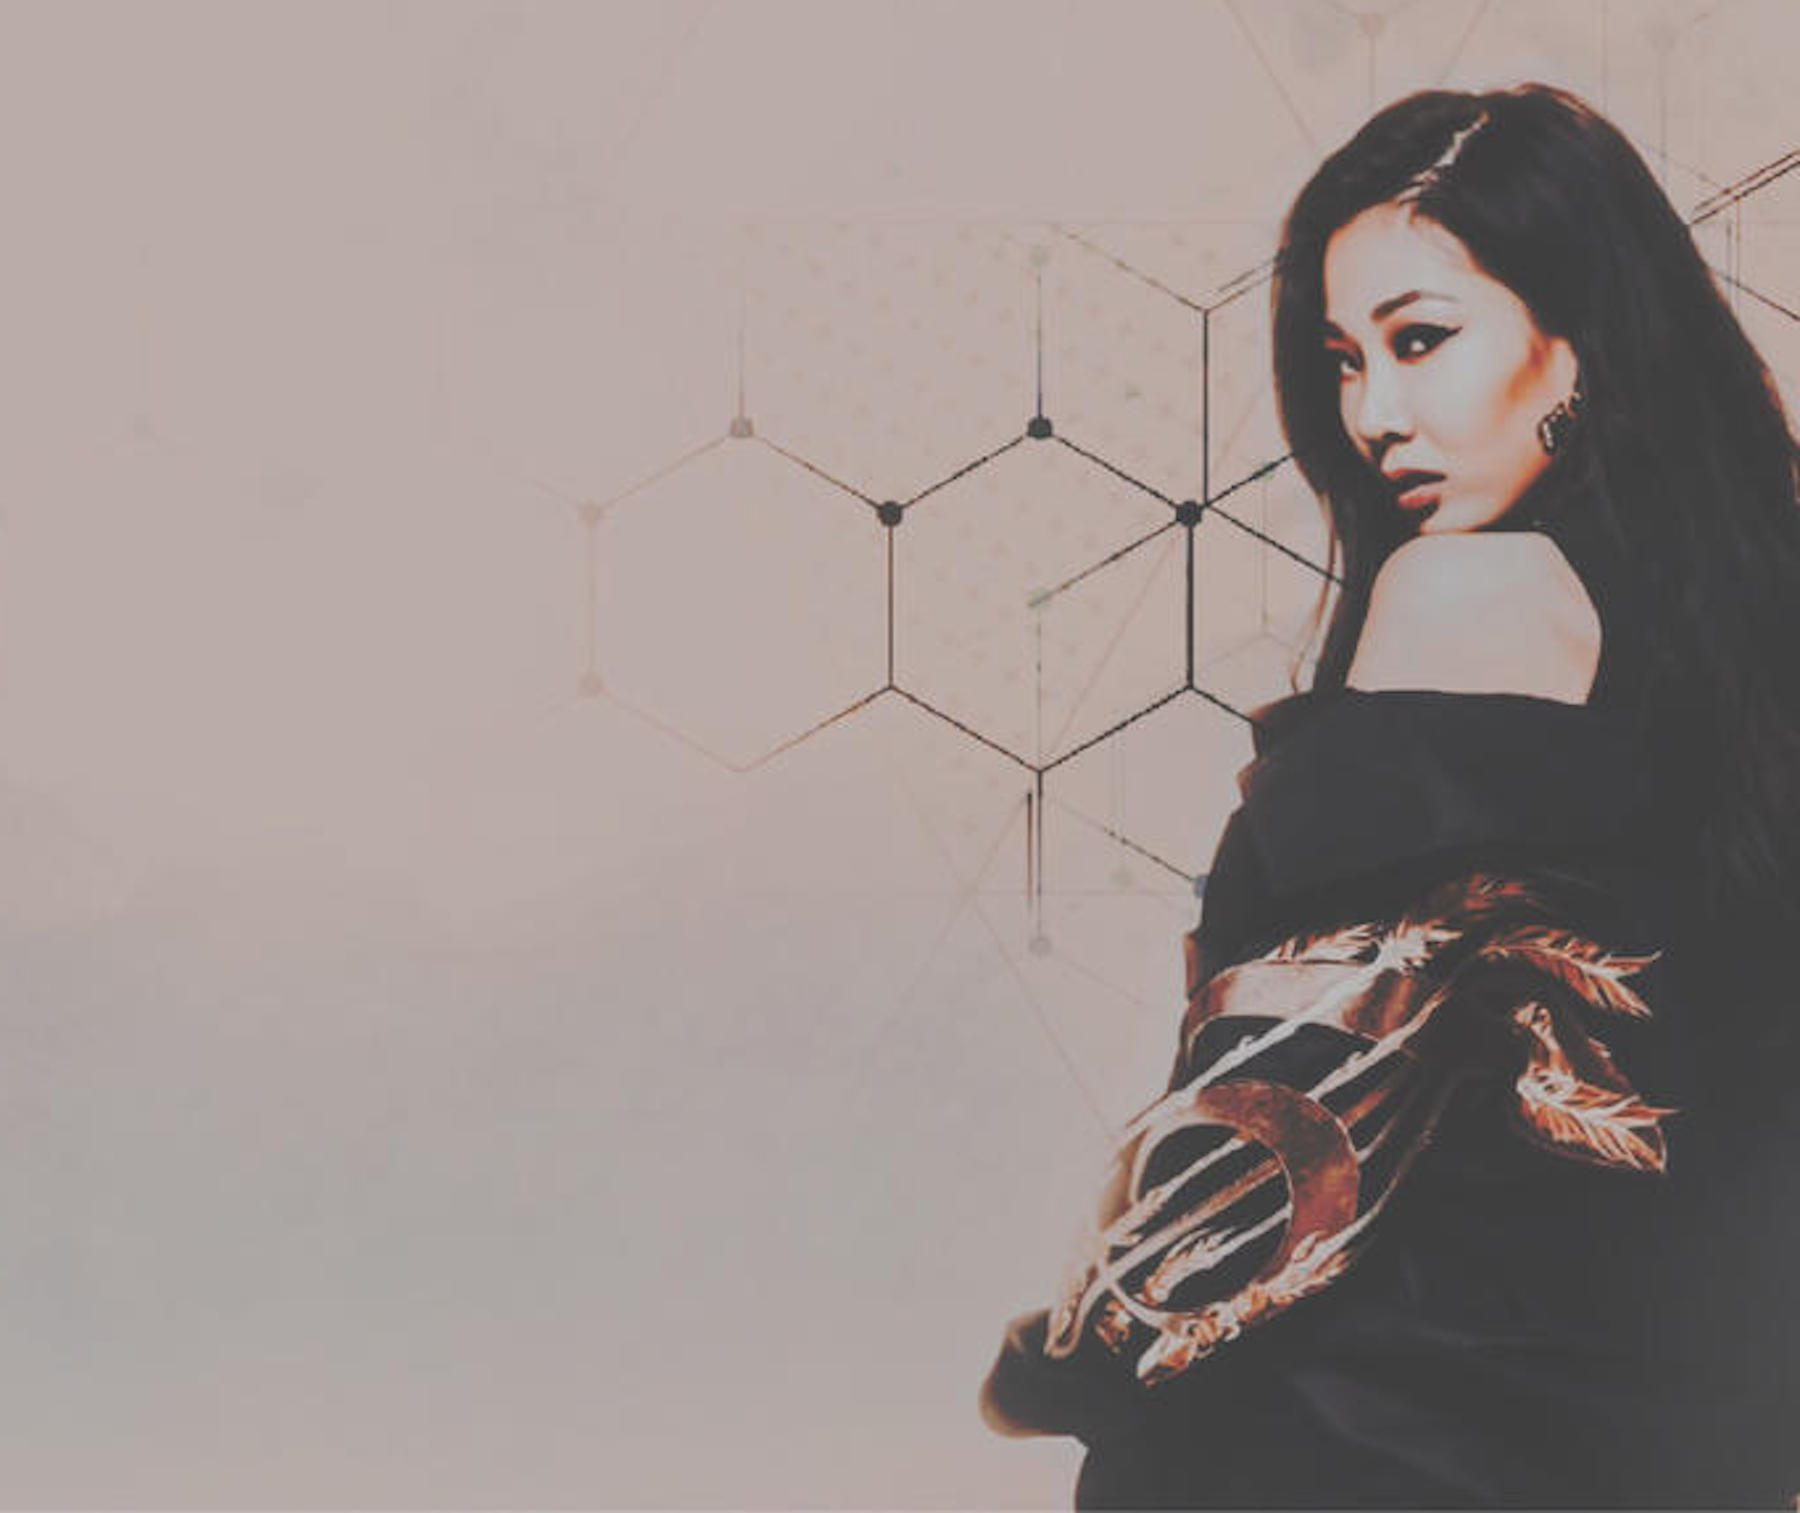 K-pop soloist Jessi with dark hair against beige background and geometric shapes.